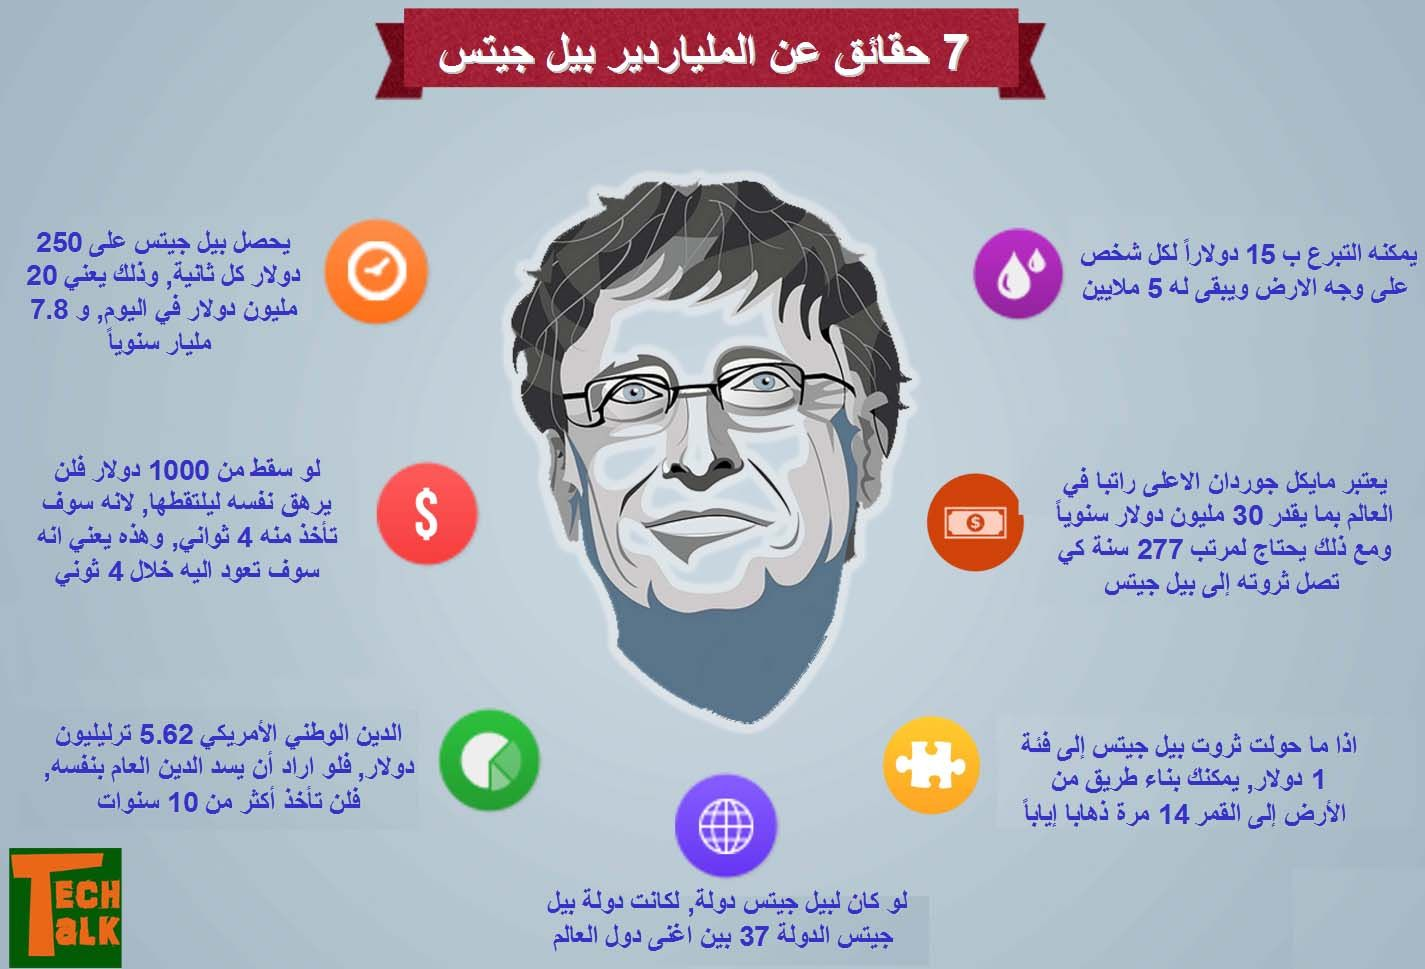 Pin By Sean On Infographic معلومات Bill Gates Infographic Facts